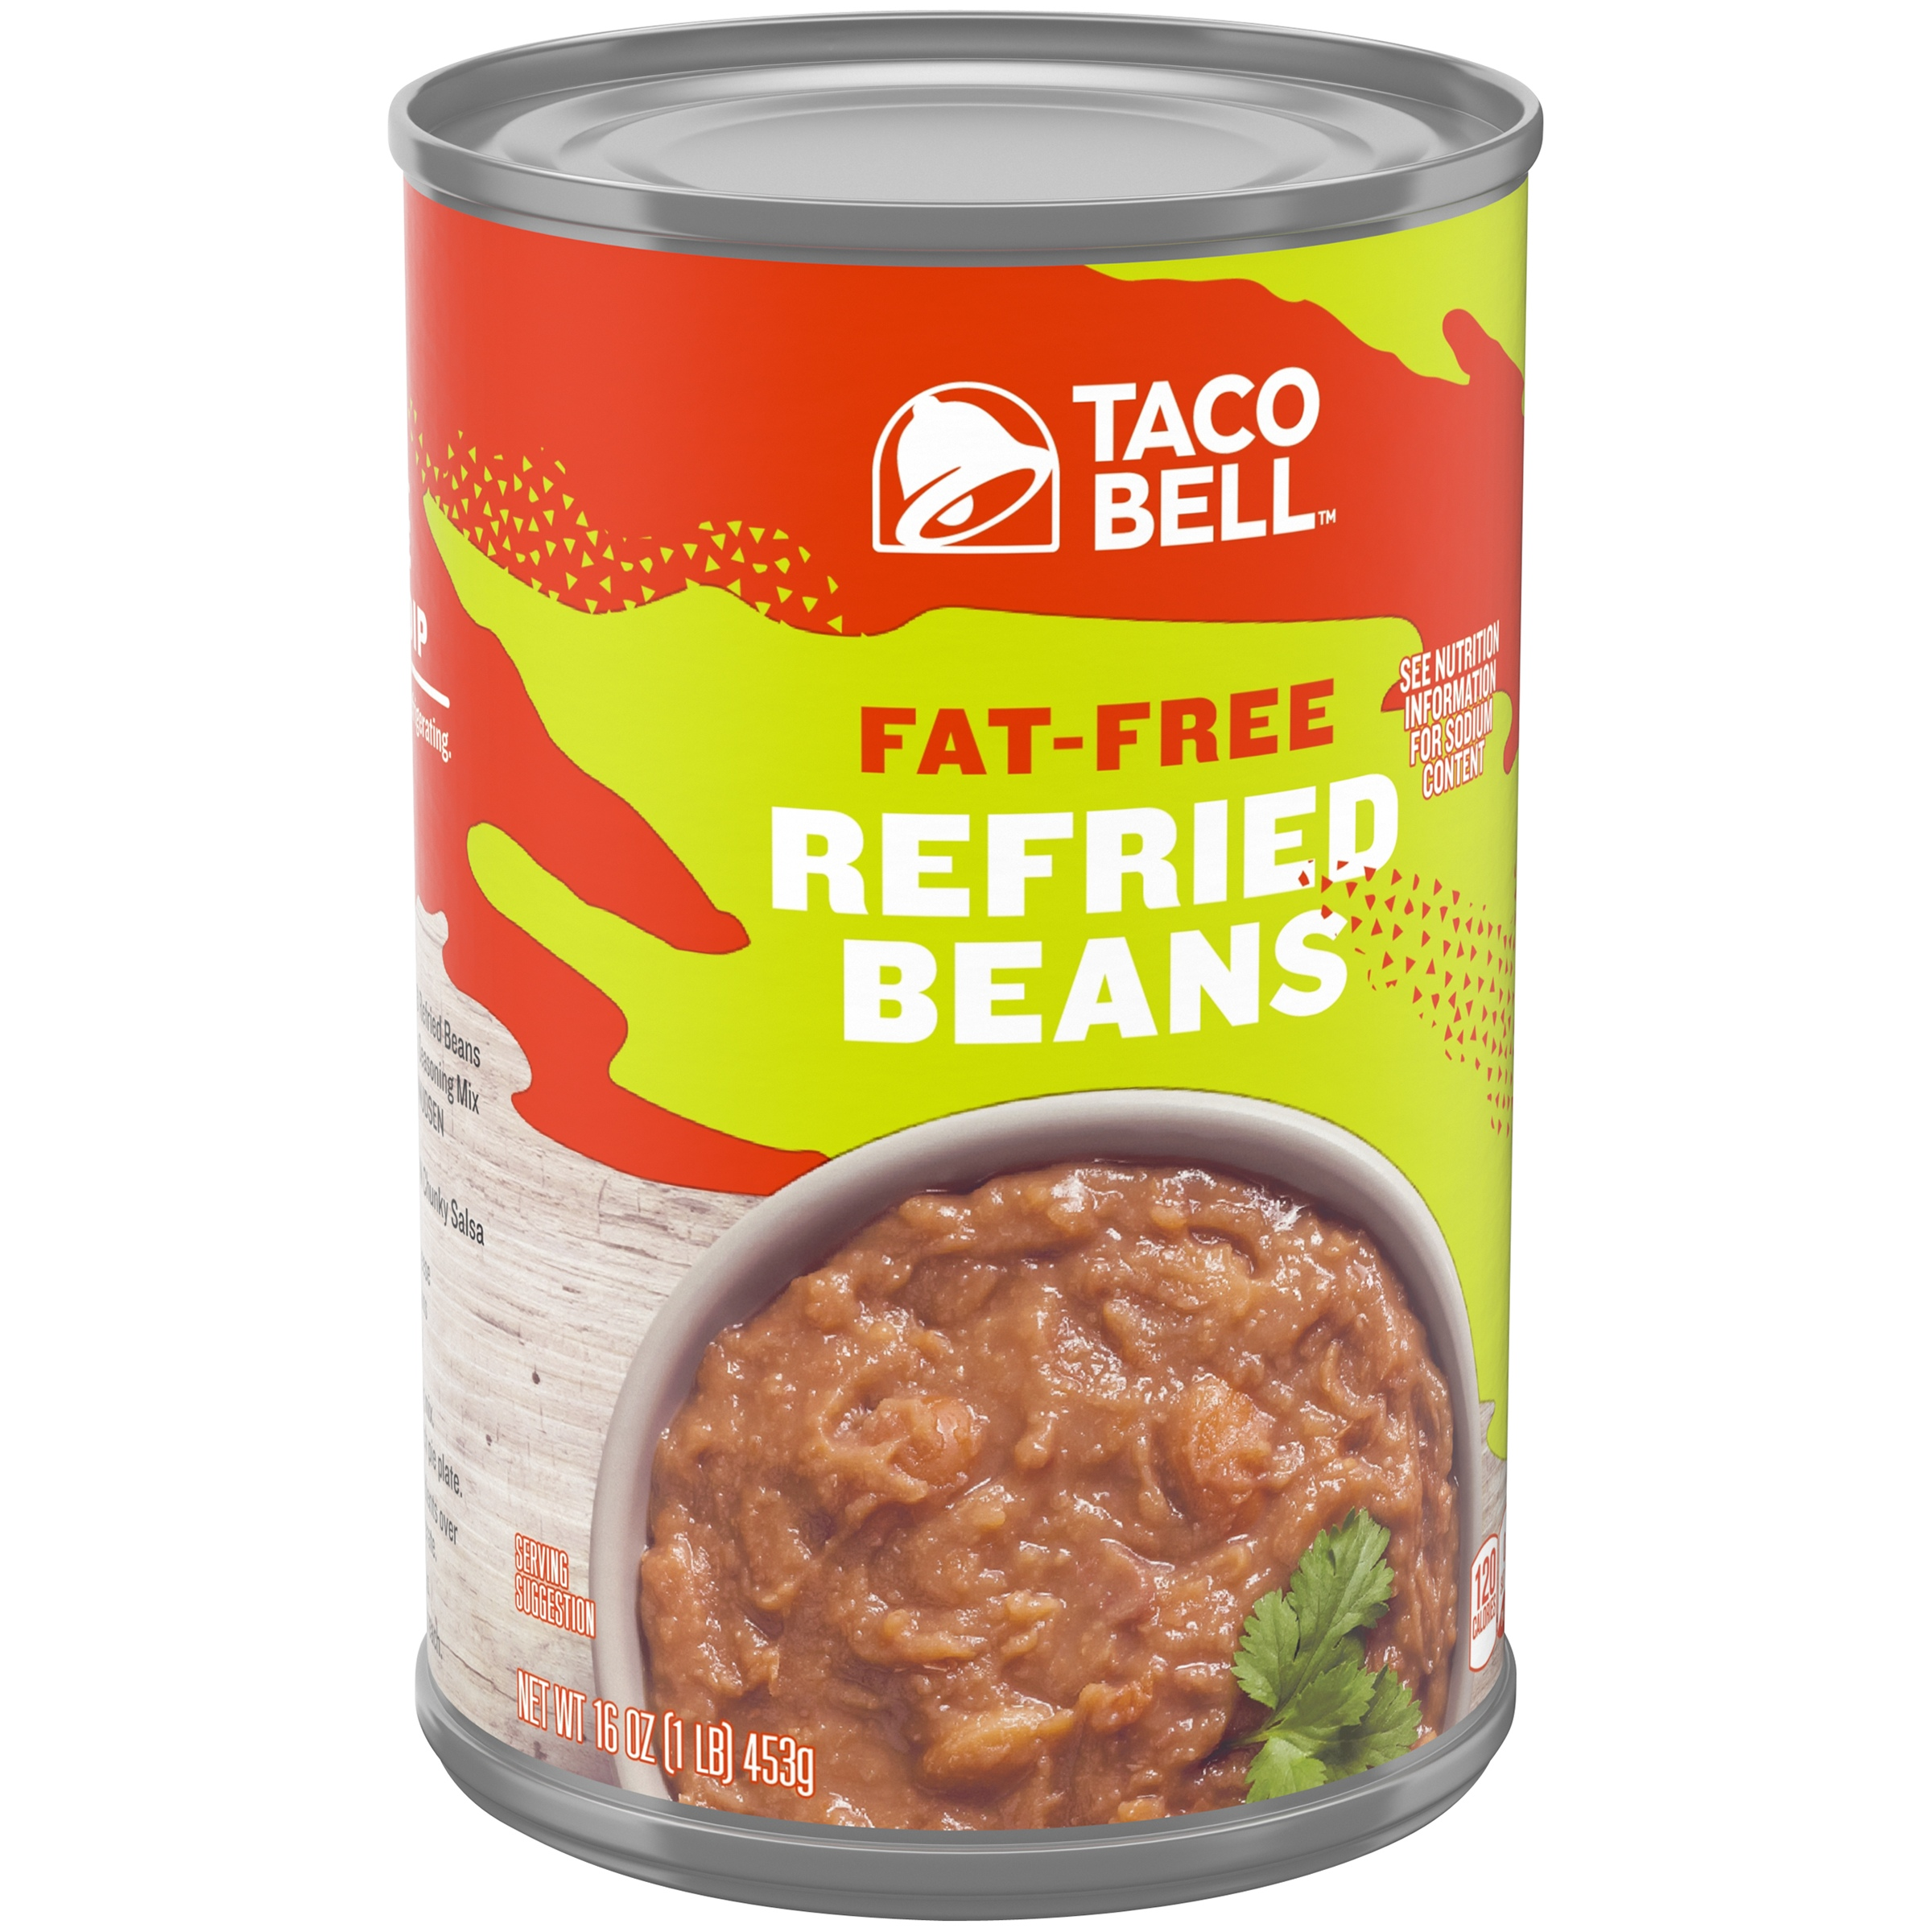 Taco Bell™ Fat-Free Refried Beans 16 oz. Can